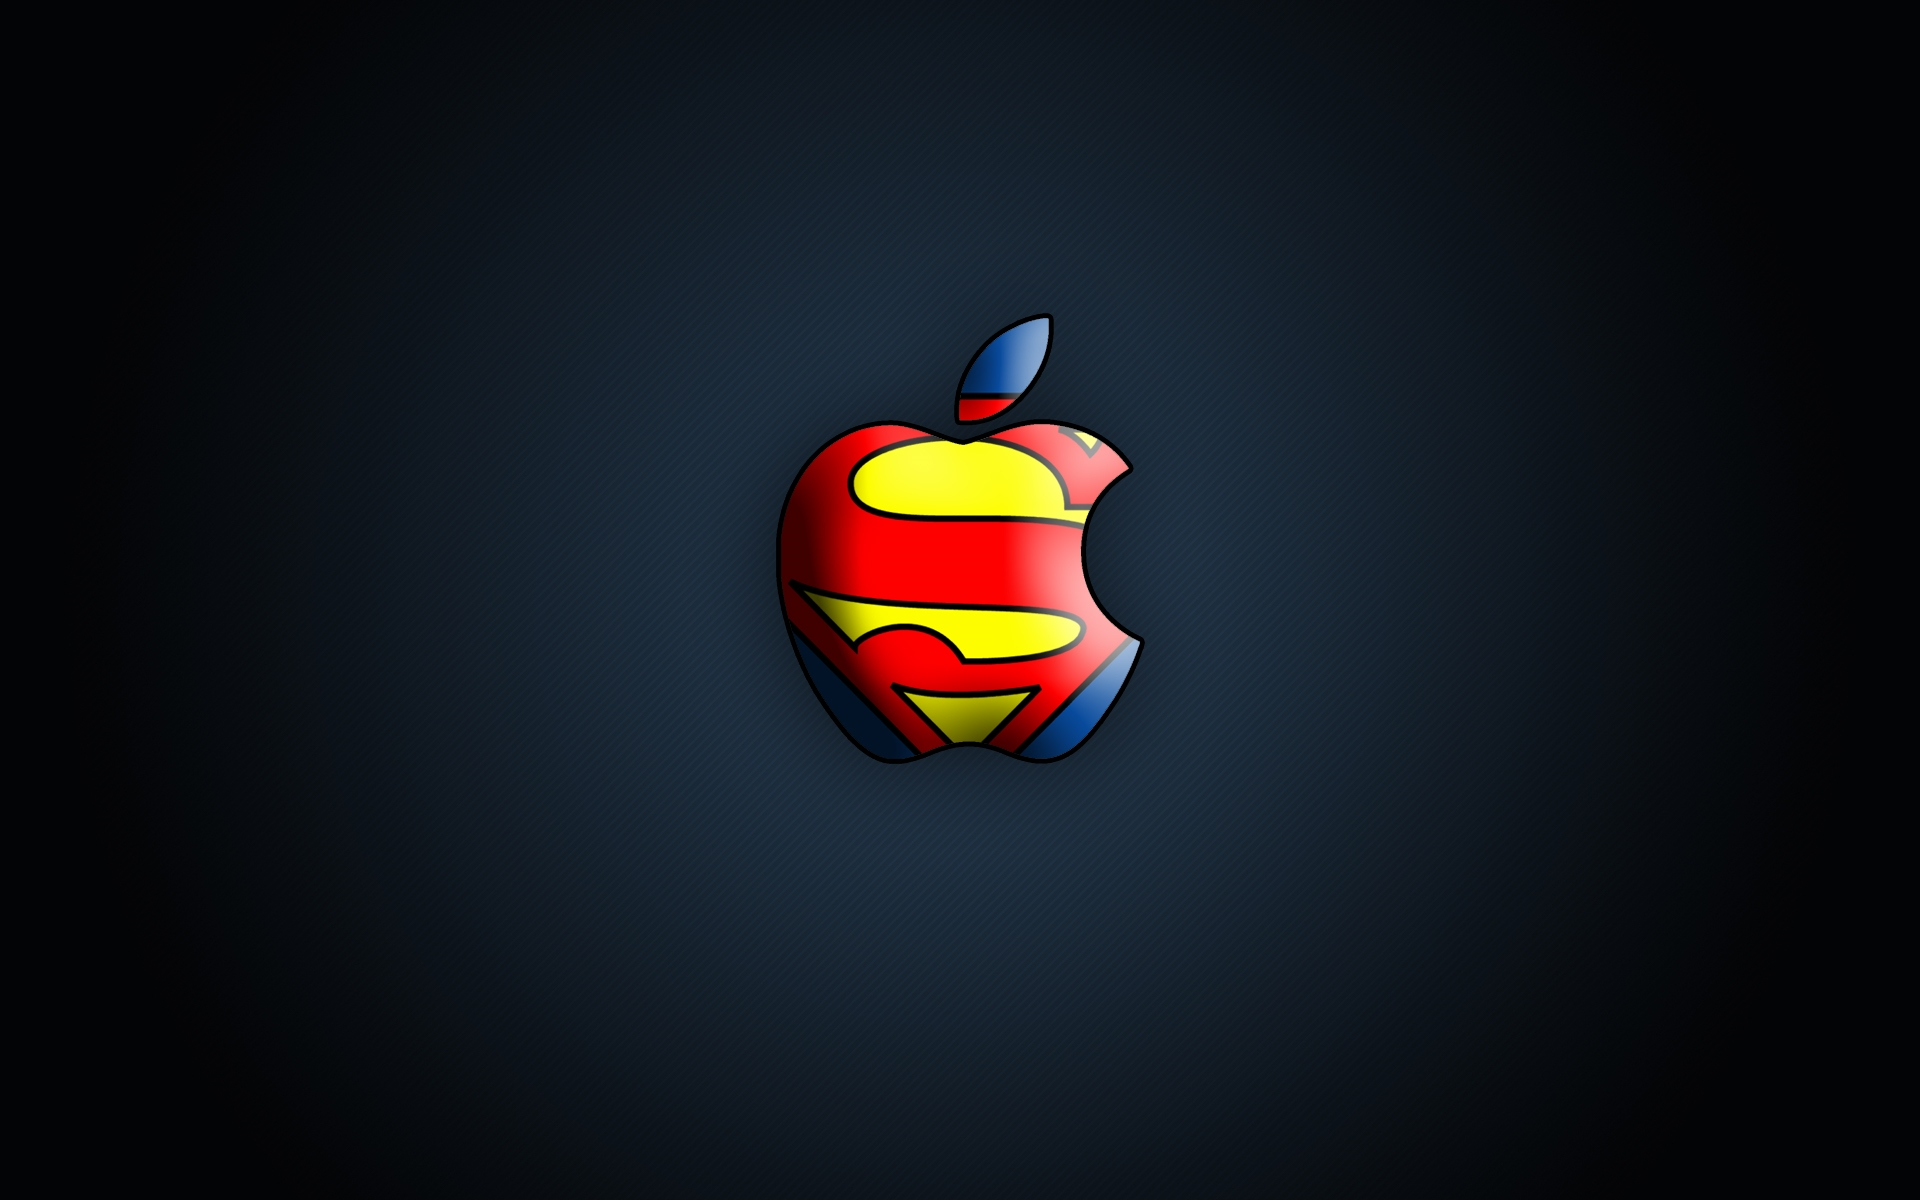 cool apple logos hd. apple logo wallpapers hd a26 cool logos hd v